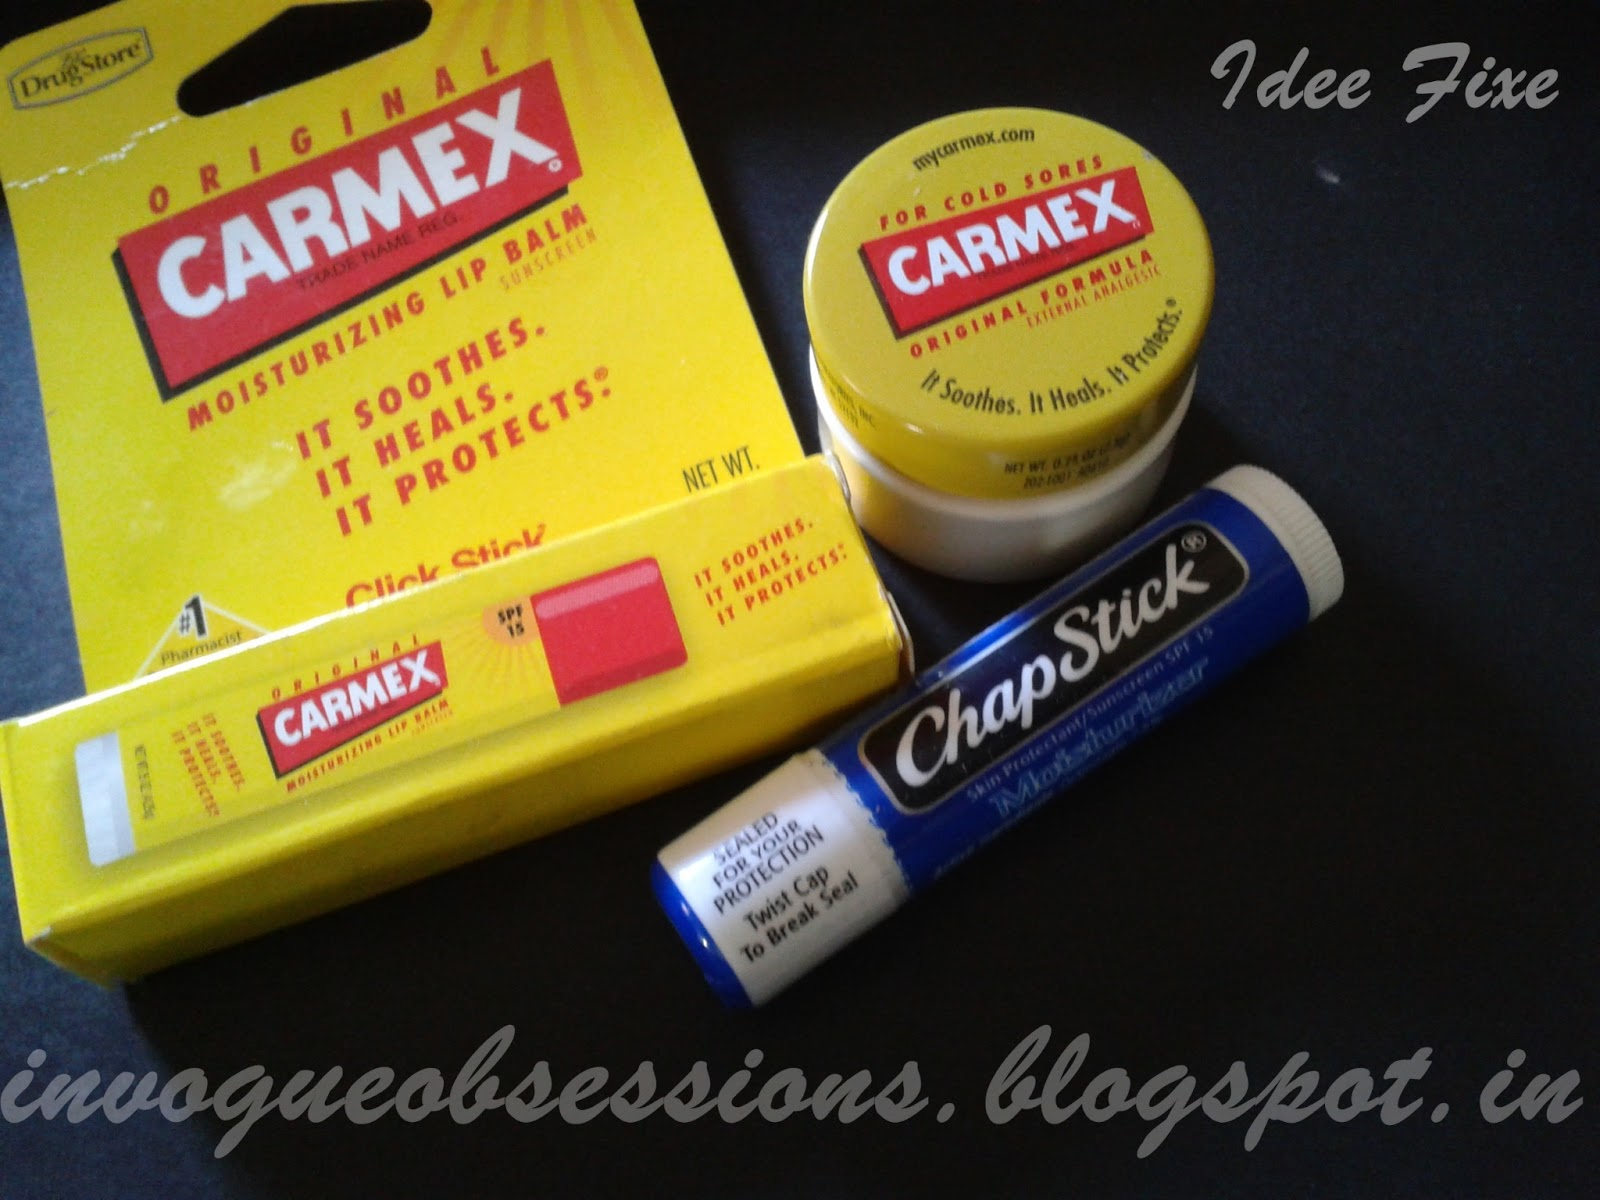 Carmex Original Formula Carmex Moisturizing Lip Balm Chapstick Moisturizer, Where to buy Carmex and Chapstick in India